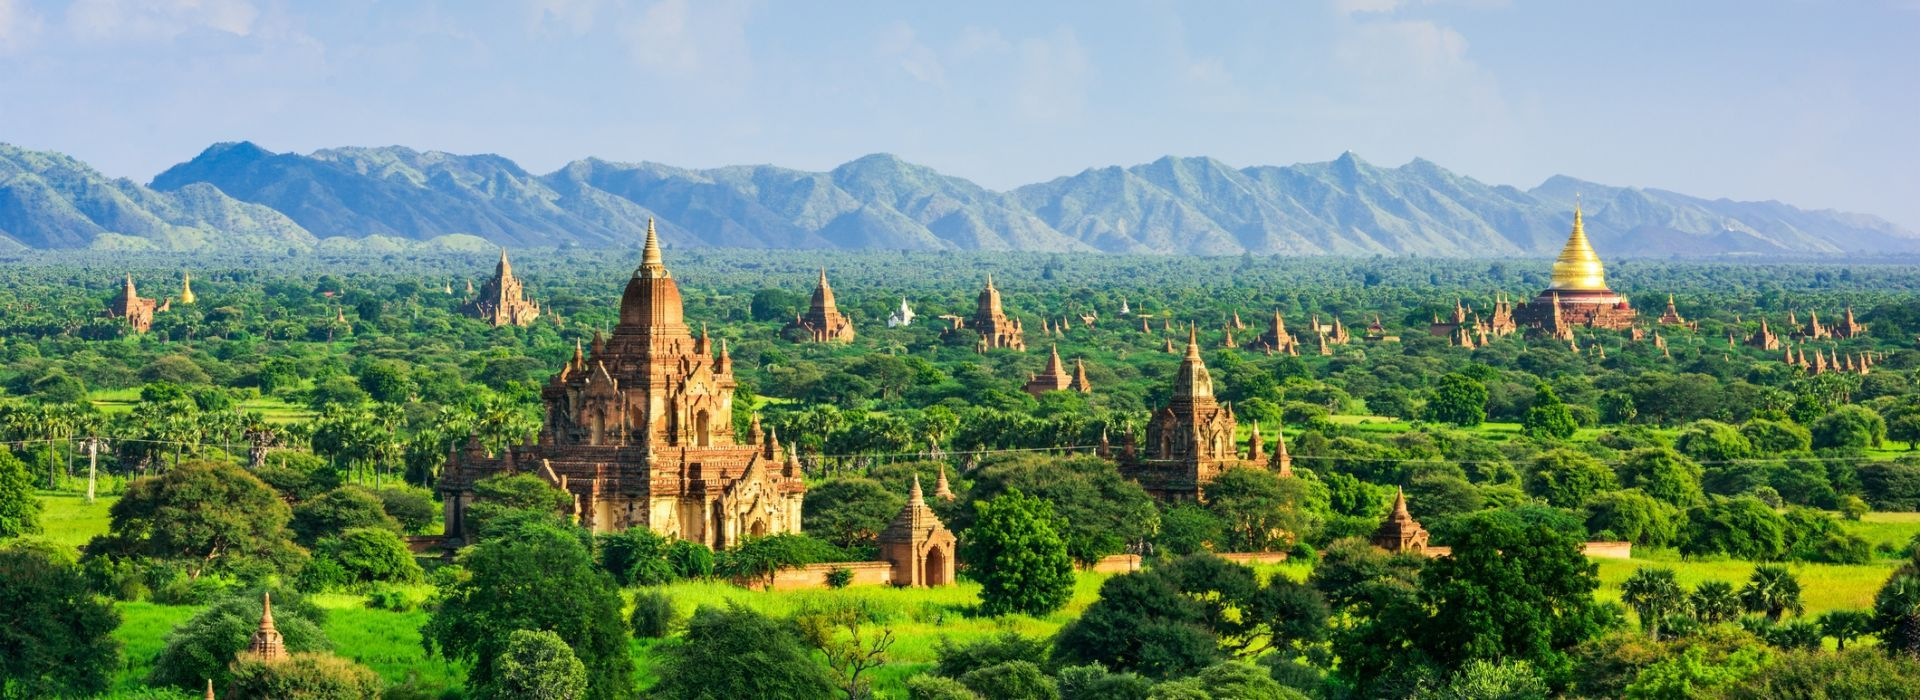 Special interests and hobbies Tours in Myanmar